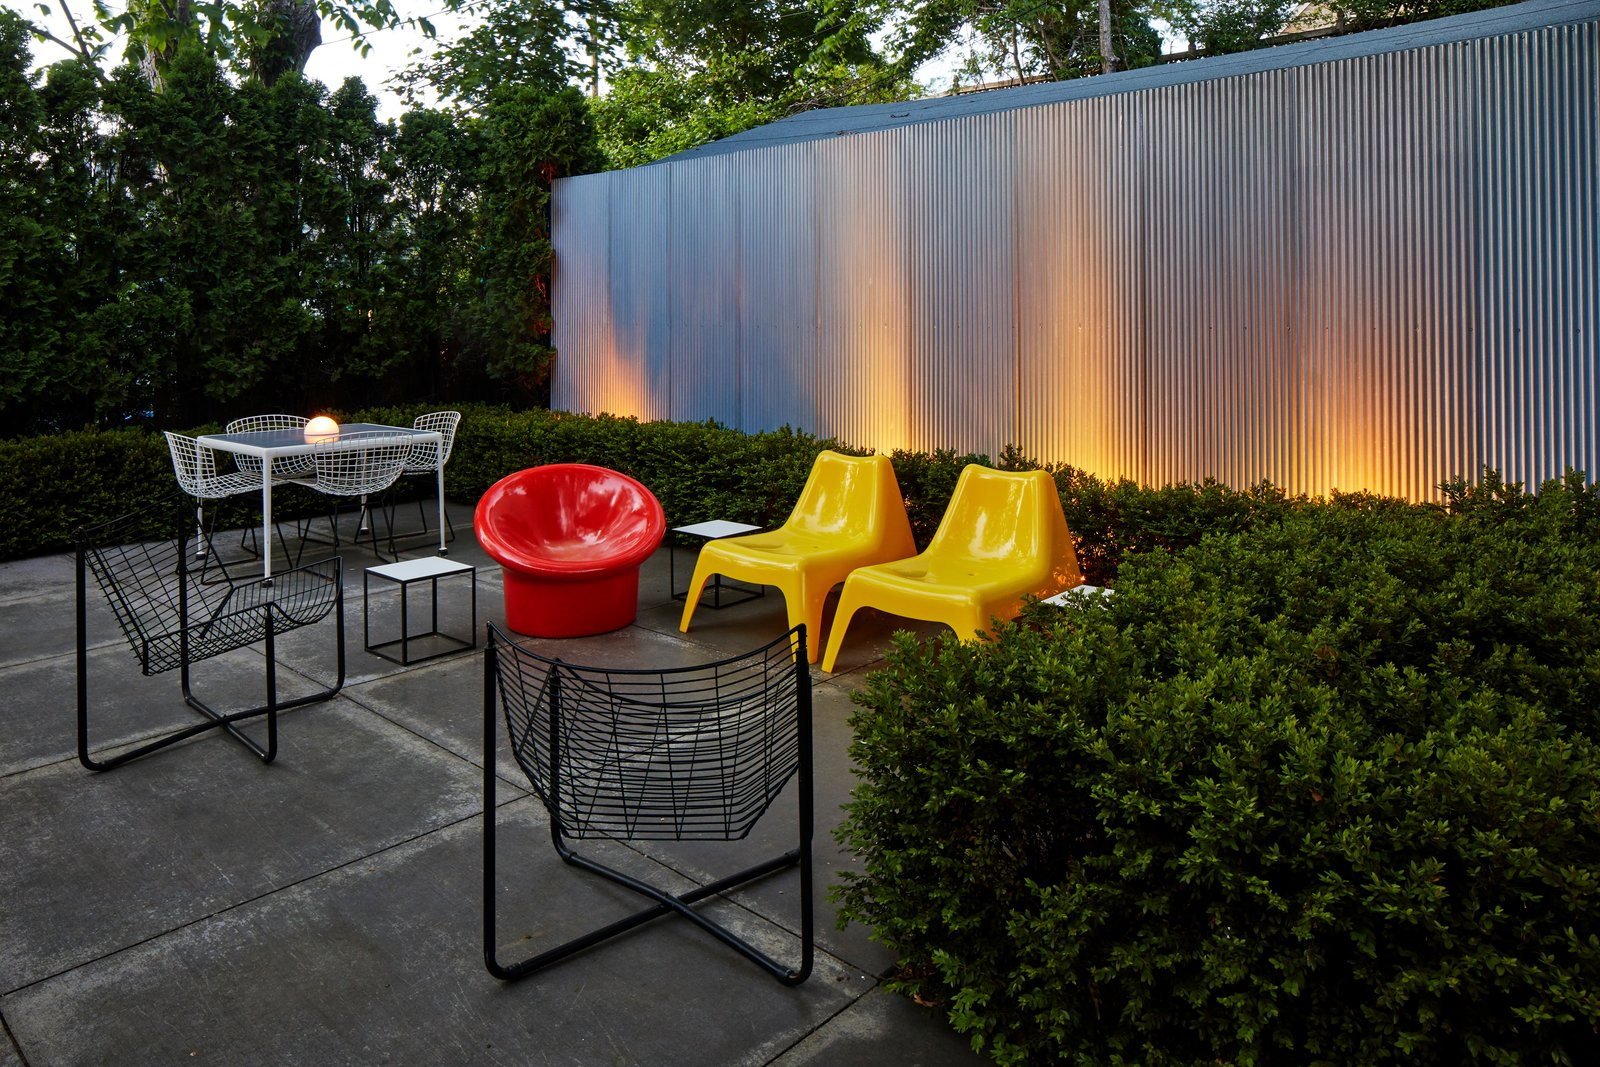 Outdoor, Metal, Concrete, Landscape, Garden, Shrubs, and Vertical With ample seating and an illuminated landscape, the backyard can facilitate easy entertaining.  Outdoor Metal Shrubs Garden Photos from A Lustron Steel Prefab in Pristine Condition Lists For $350K